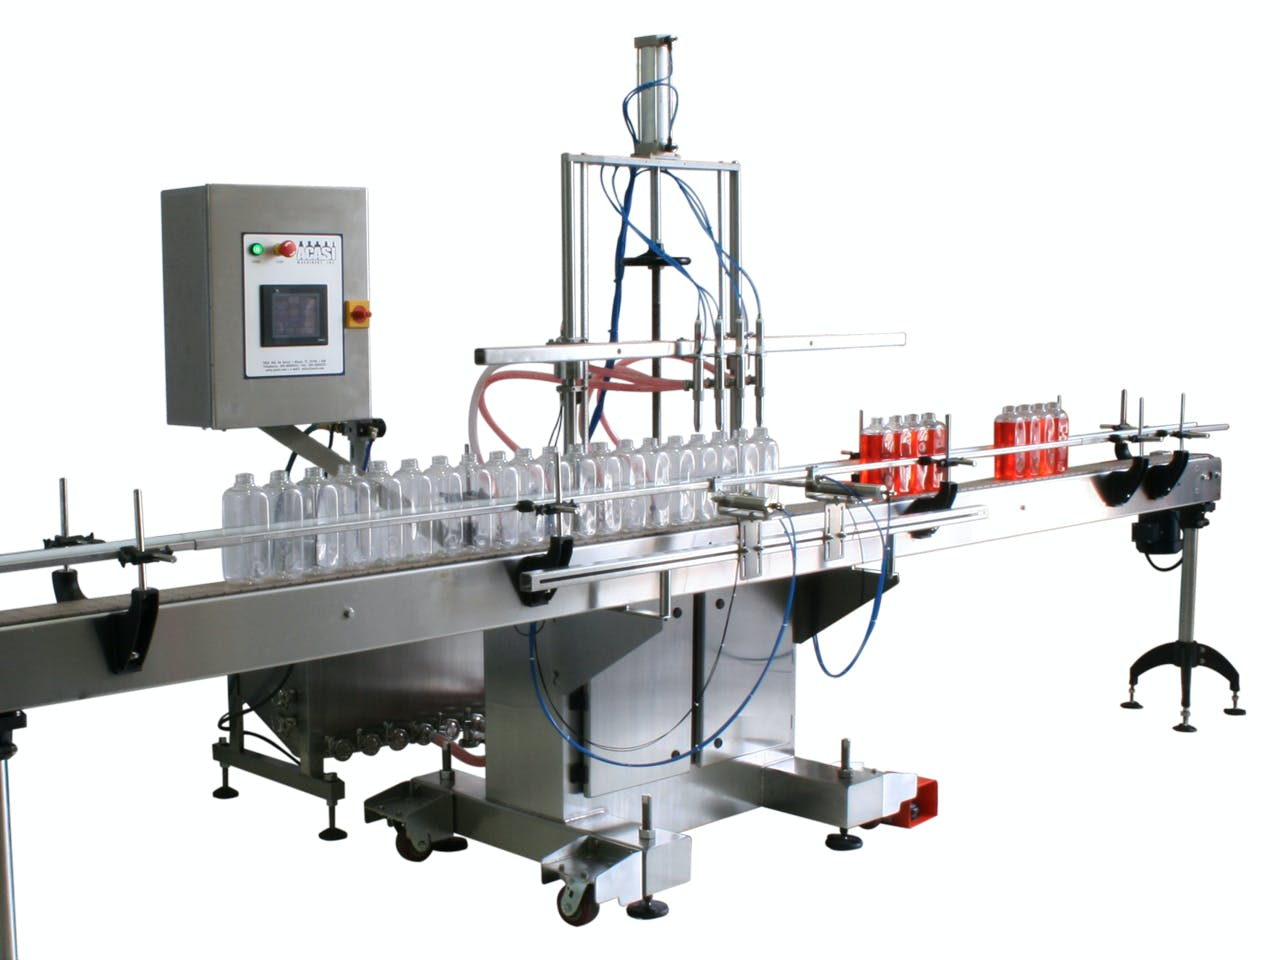 Acasi Trupump 8 positive displacement filler Bottle filler sold by ACASI Machinery